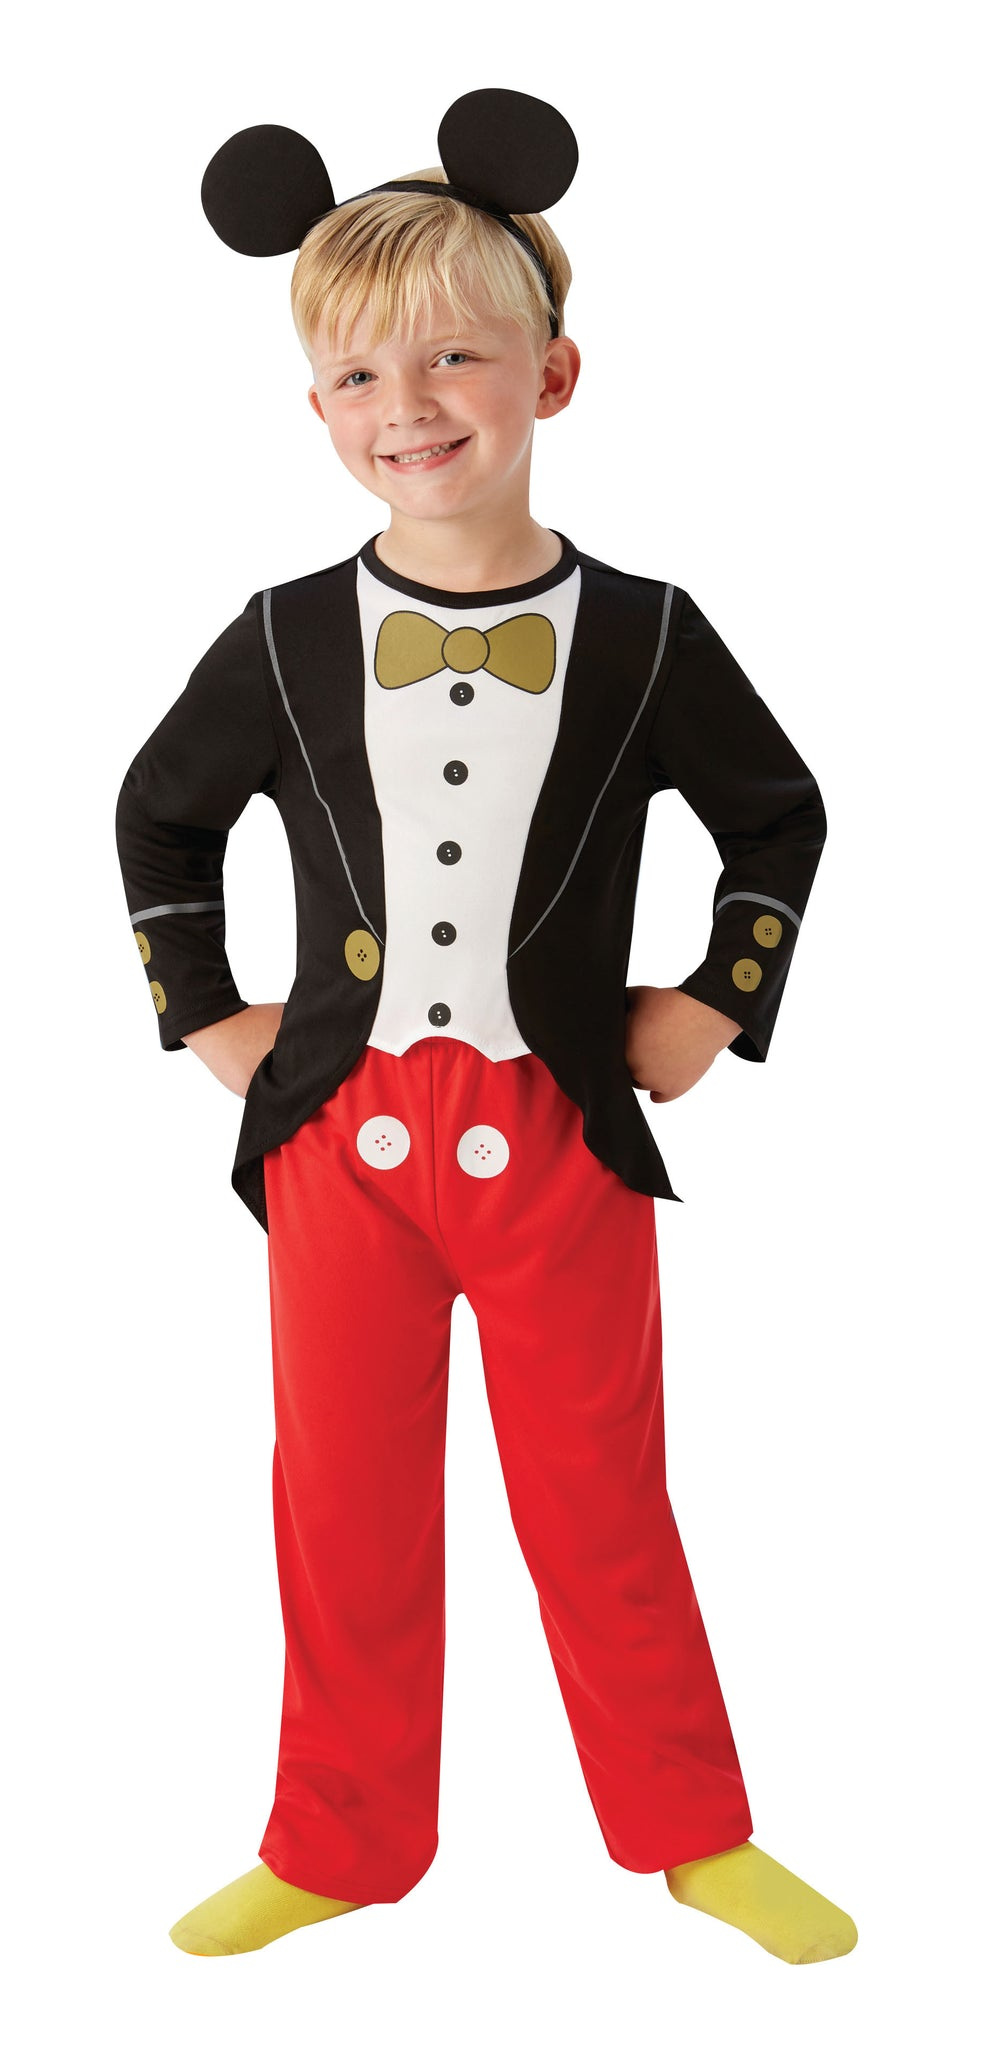 MICKEY MOUSE TUXEDO COSTUME, CHILD - SIZE S